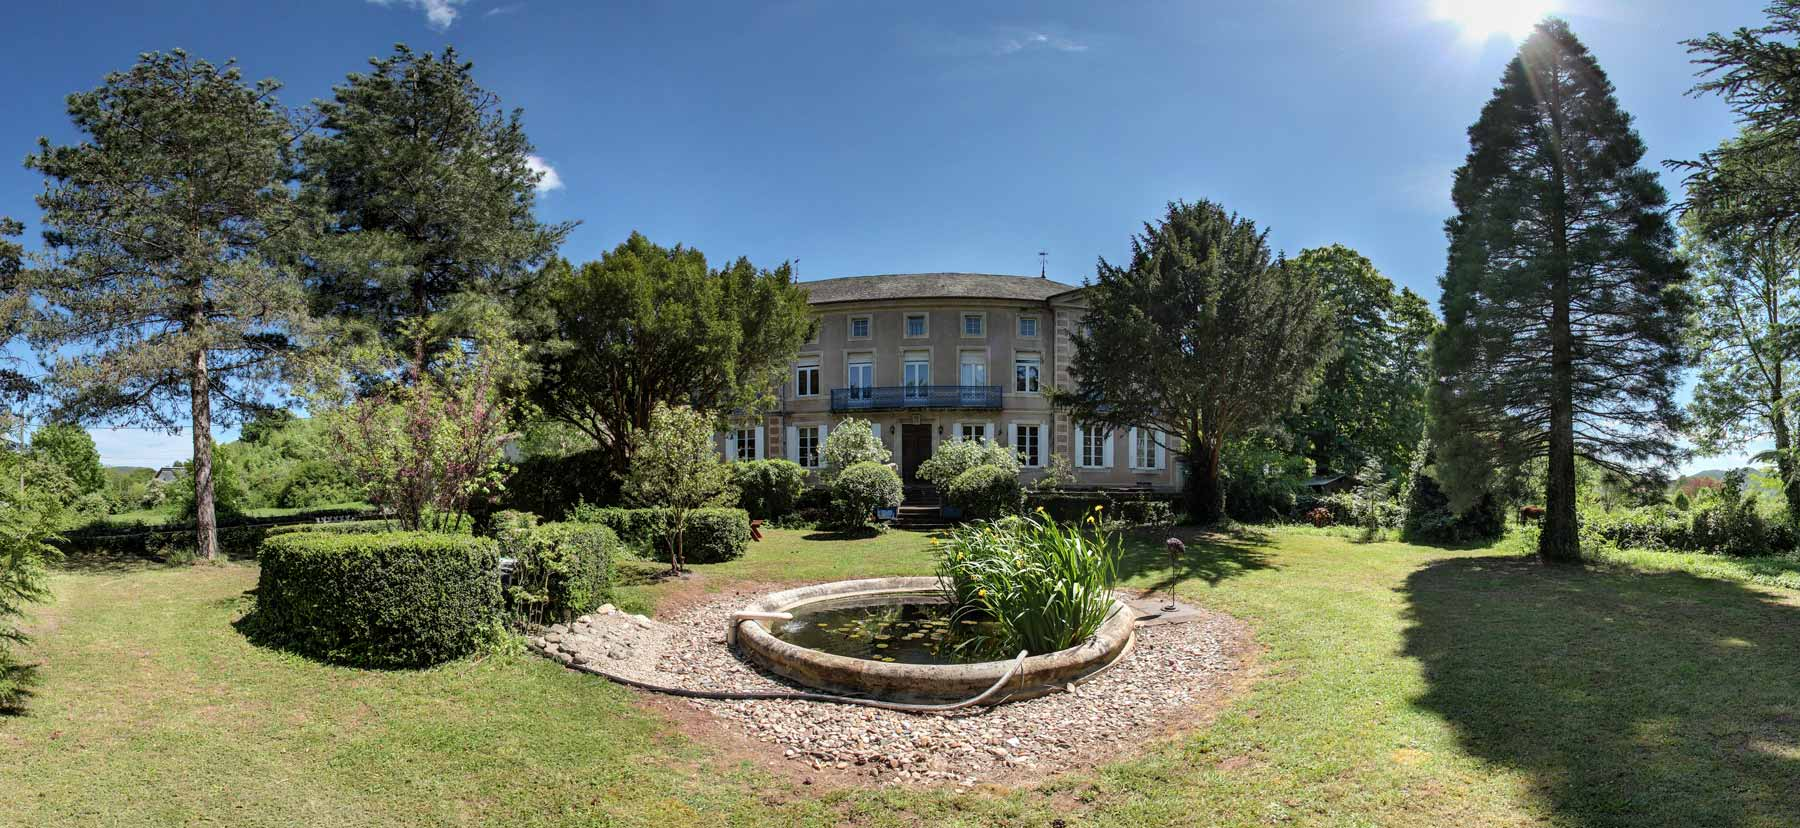 Chambres et table d 39 h tes en aveyron - Aveyron chambres d hotes ...